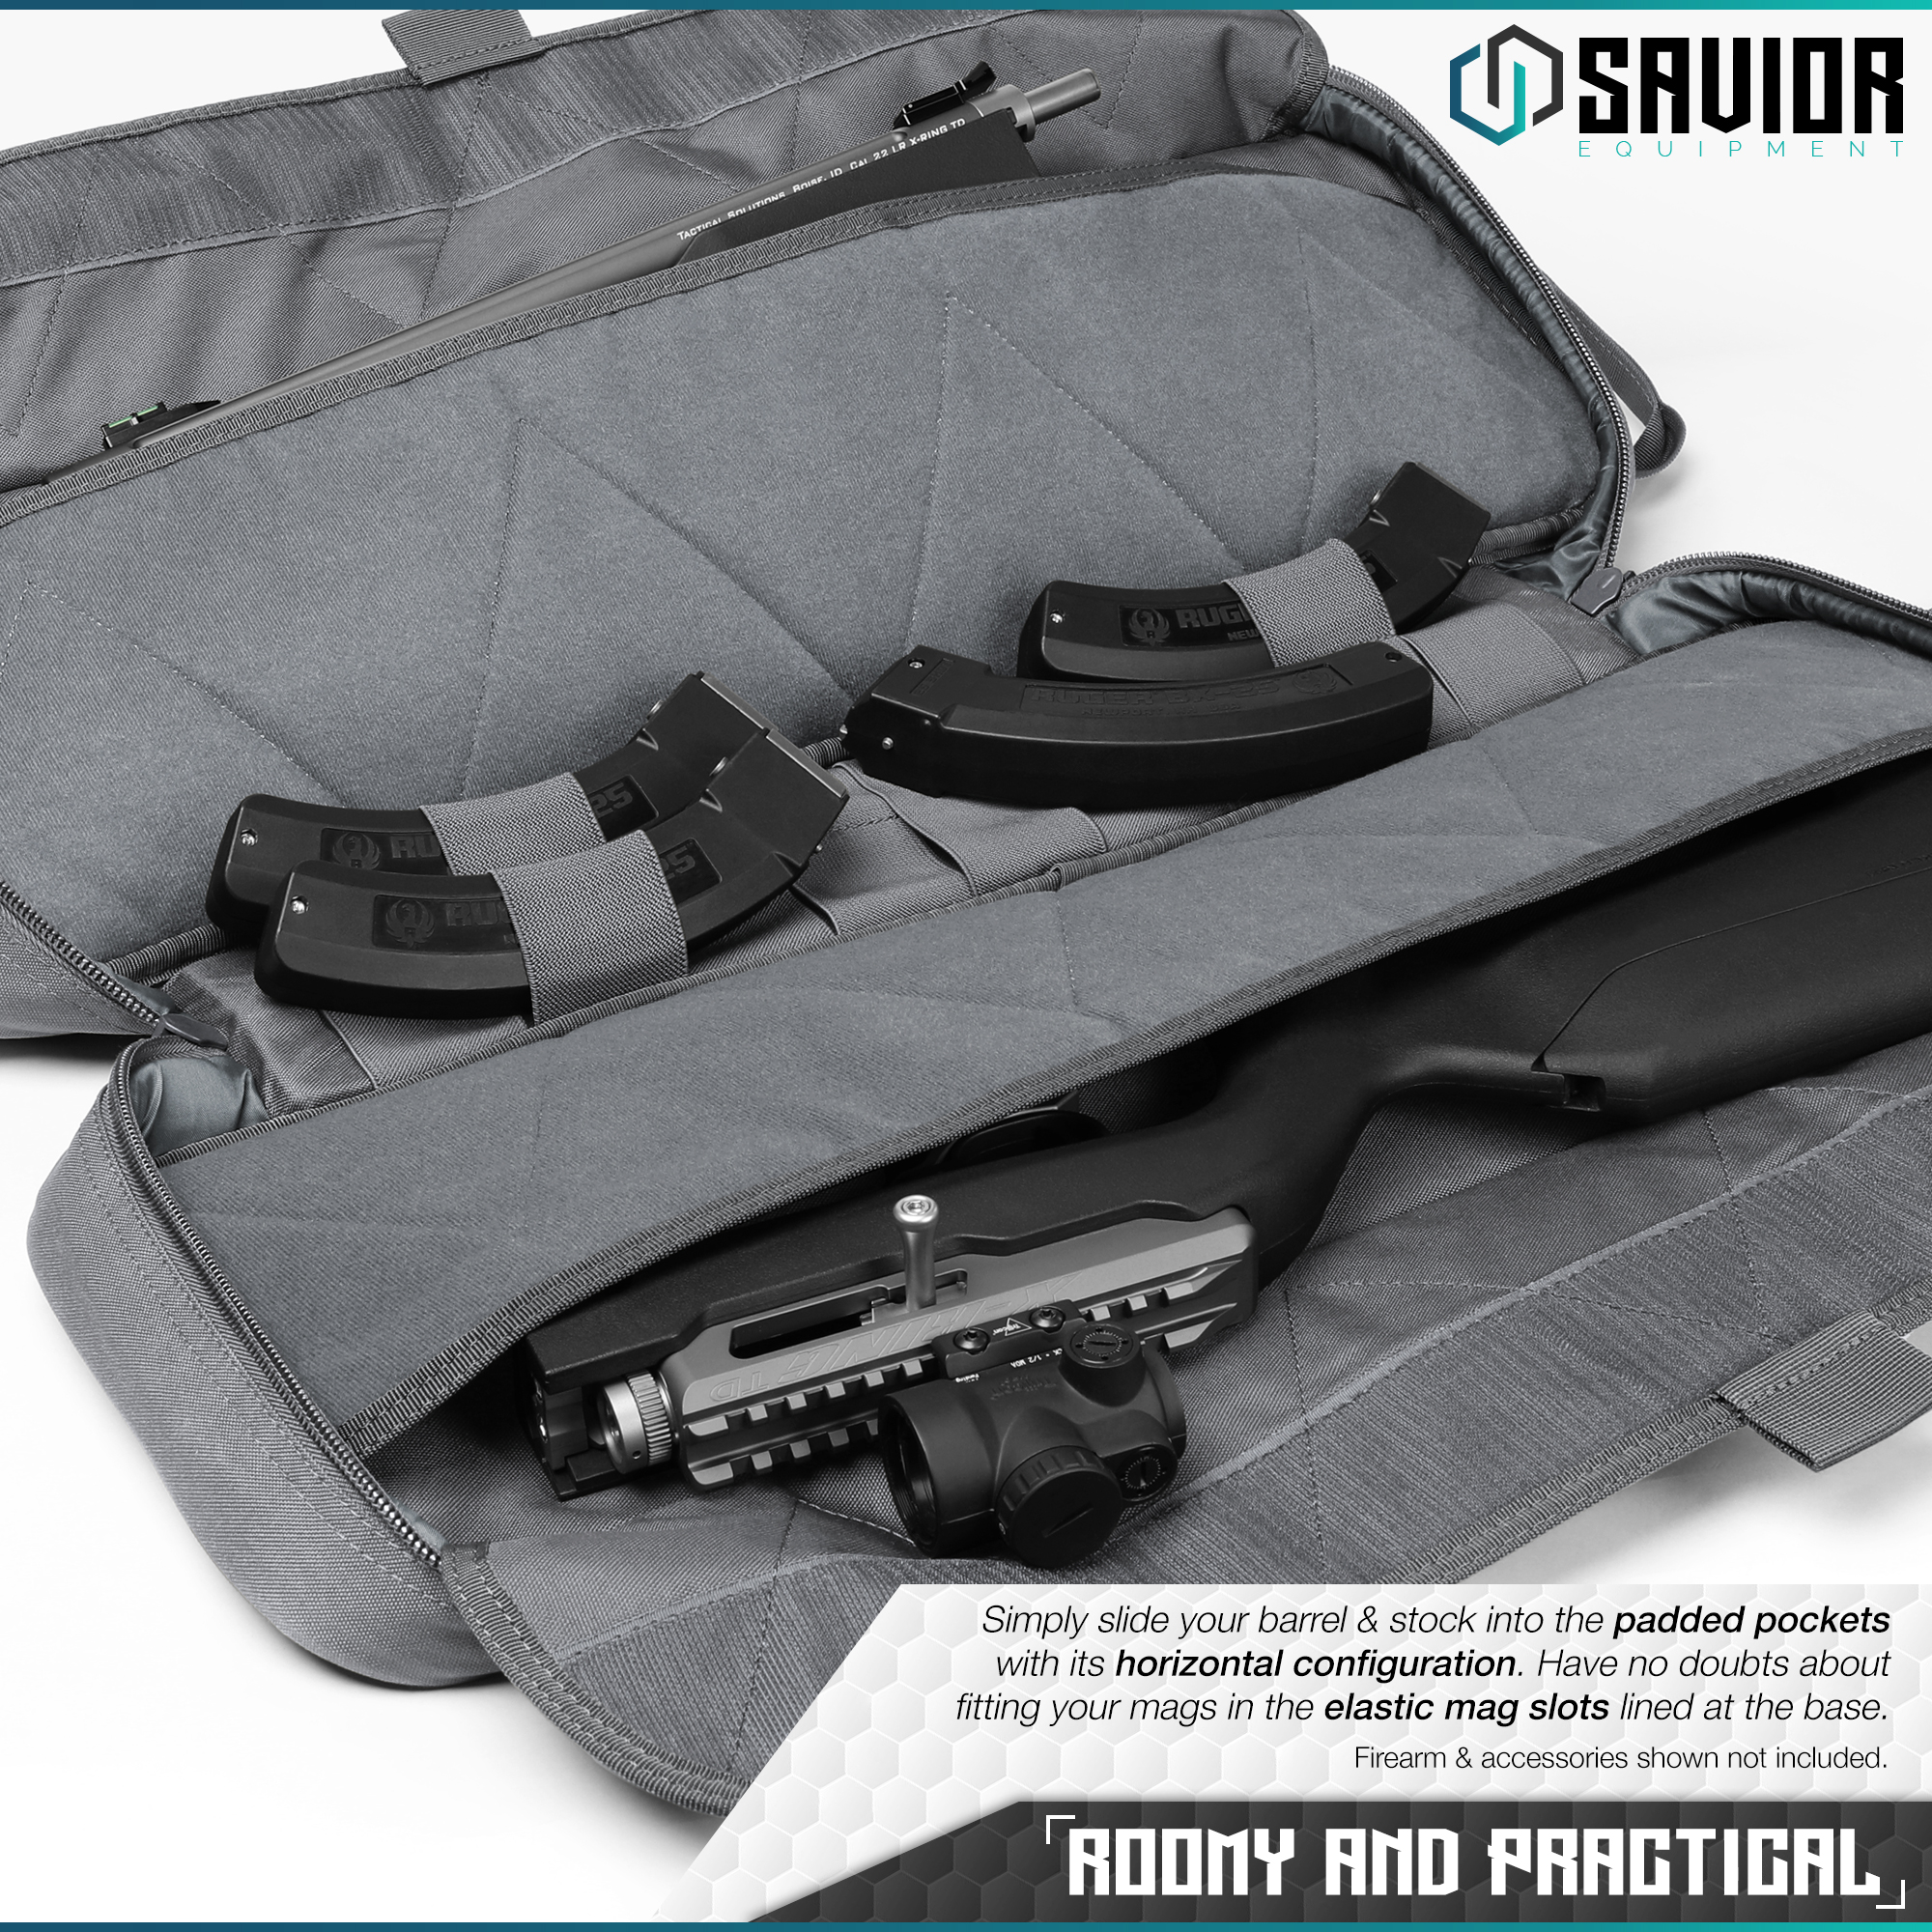 Savior-Tactical-Urban-Takedown-Bag-Carbine-Rifle-Padded-Shotgun-Firearm-Backpack thumbnail 22